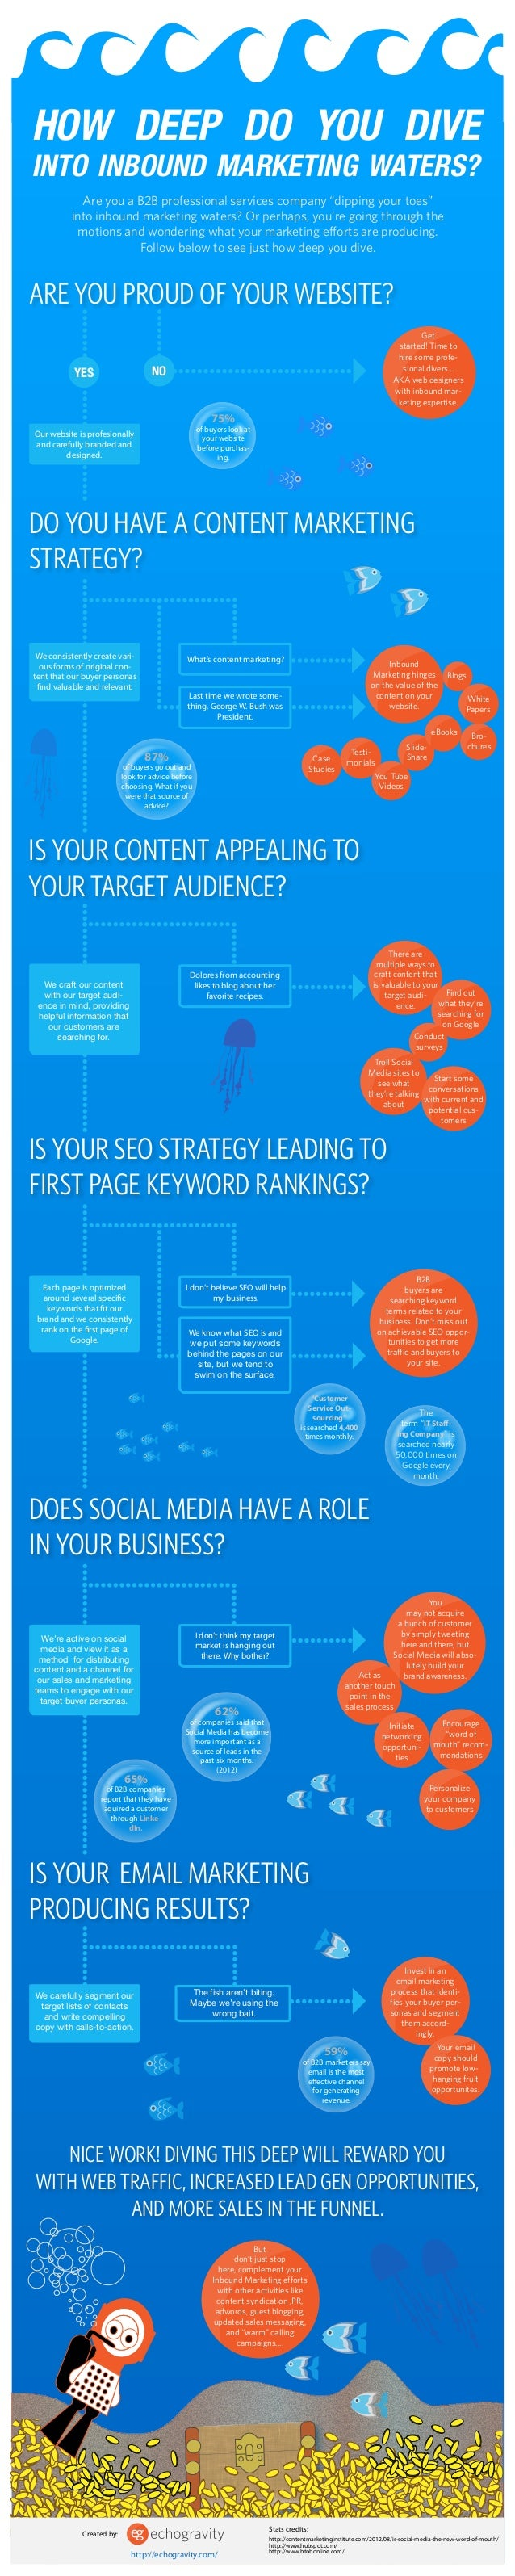 How deep do you dive in Inbound Marketing waters [Infographic]